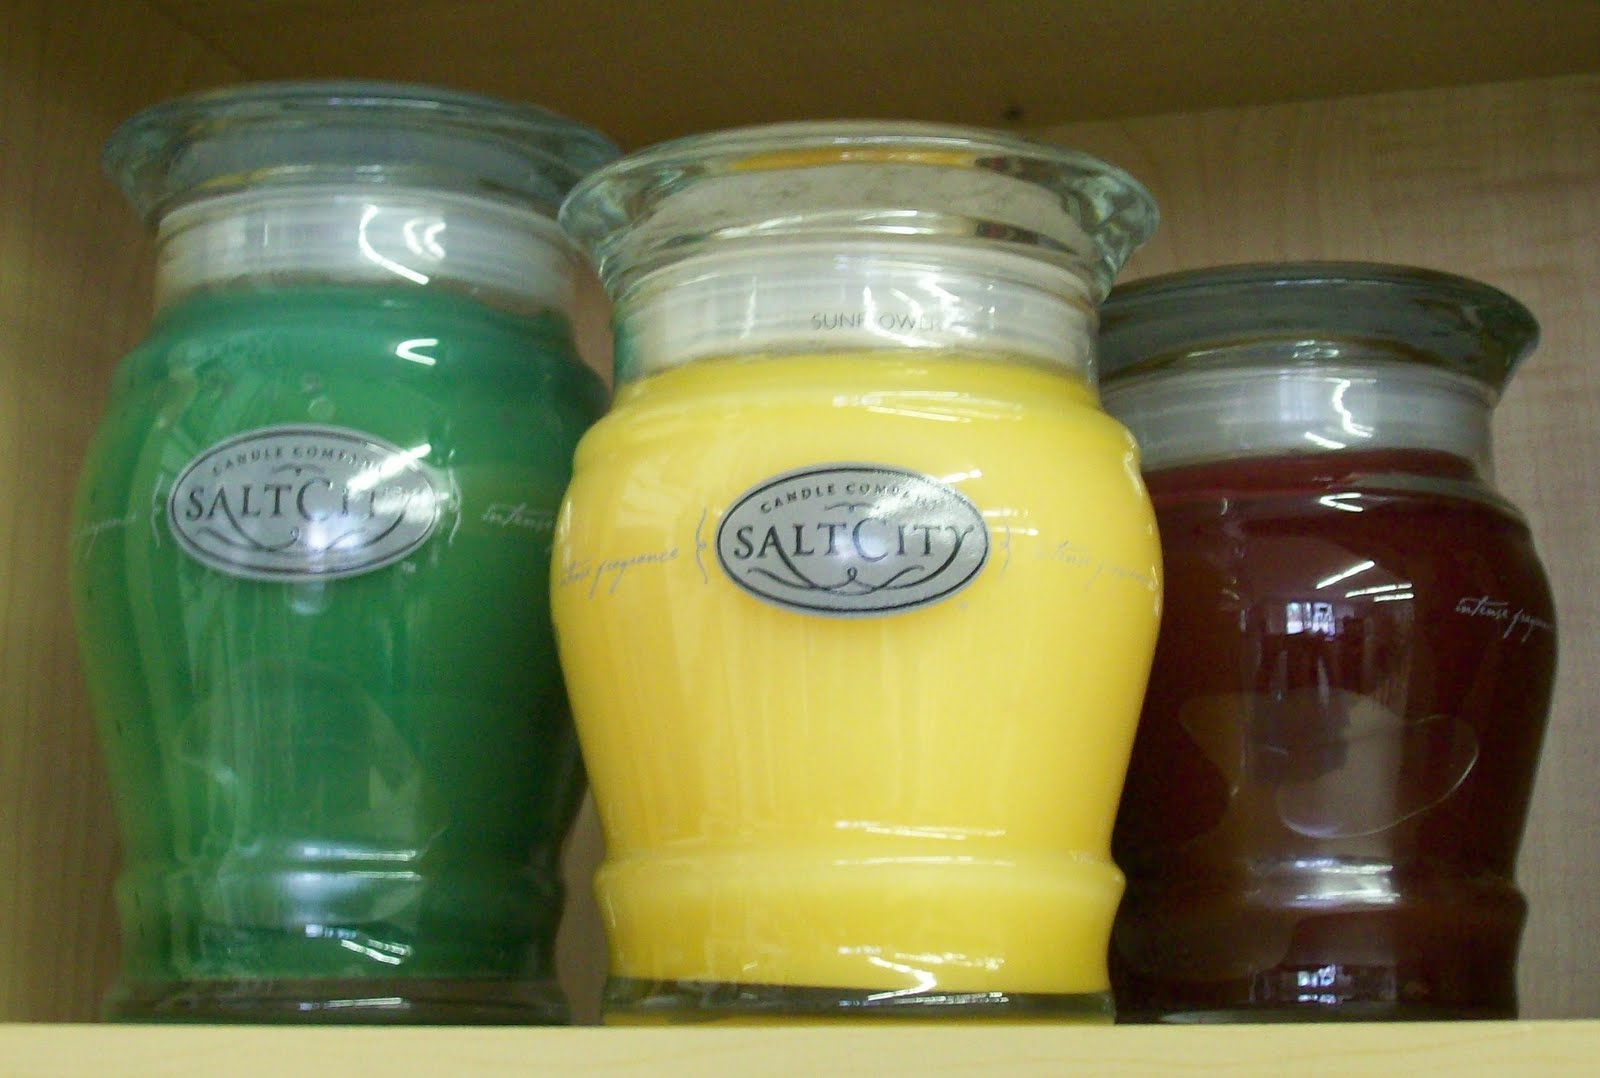 IS SALT CITY CANDLES GOING OUT OF BUSINESS